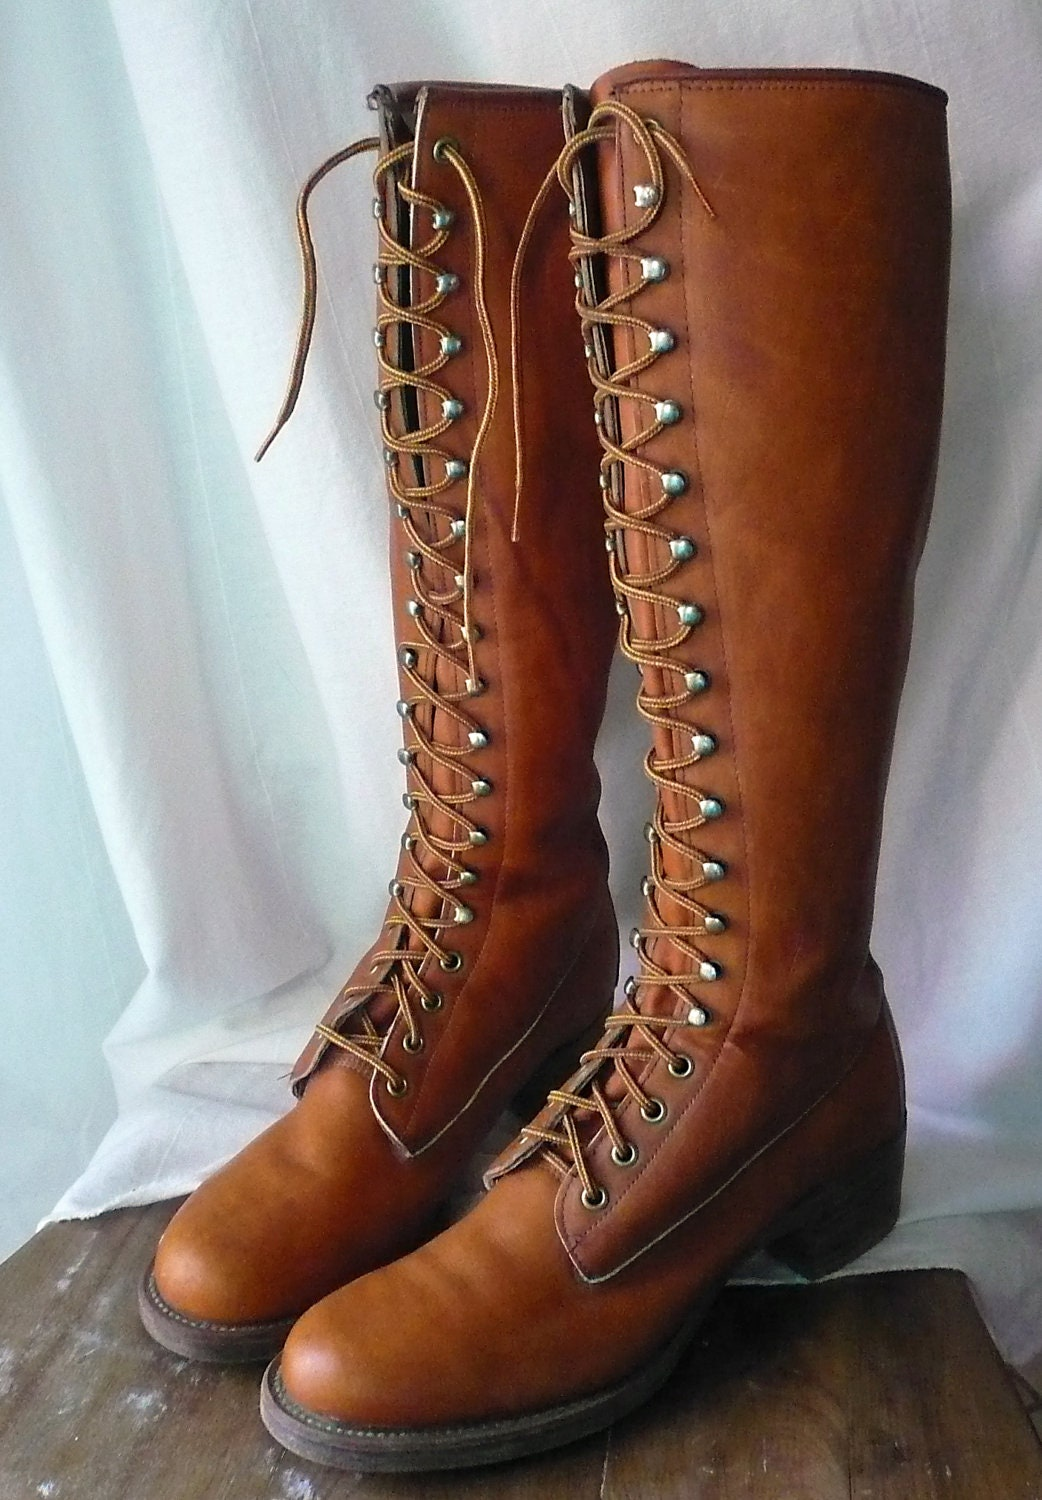 Find great deals on eBay for vintage womens lace up boots. Shop with confidence.